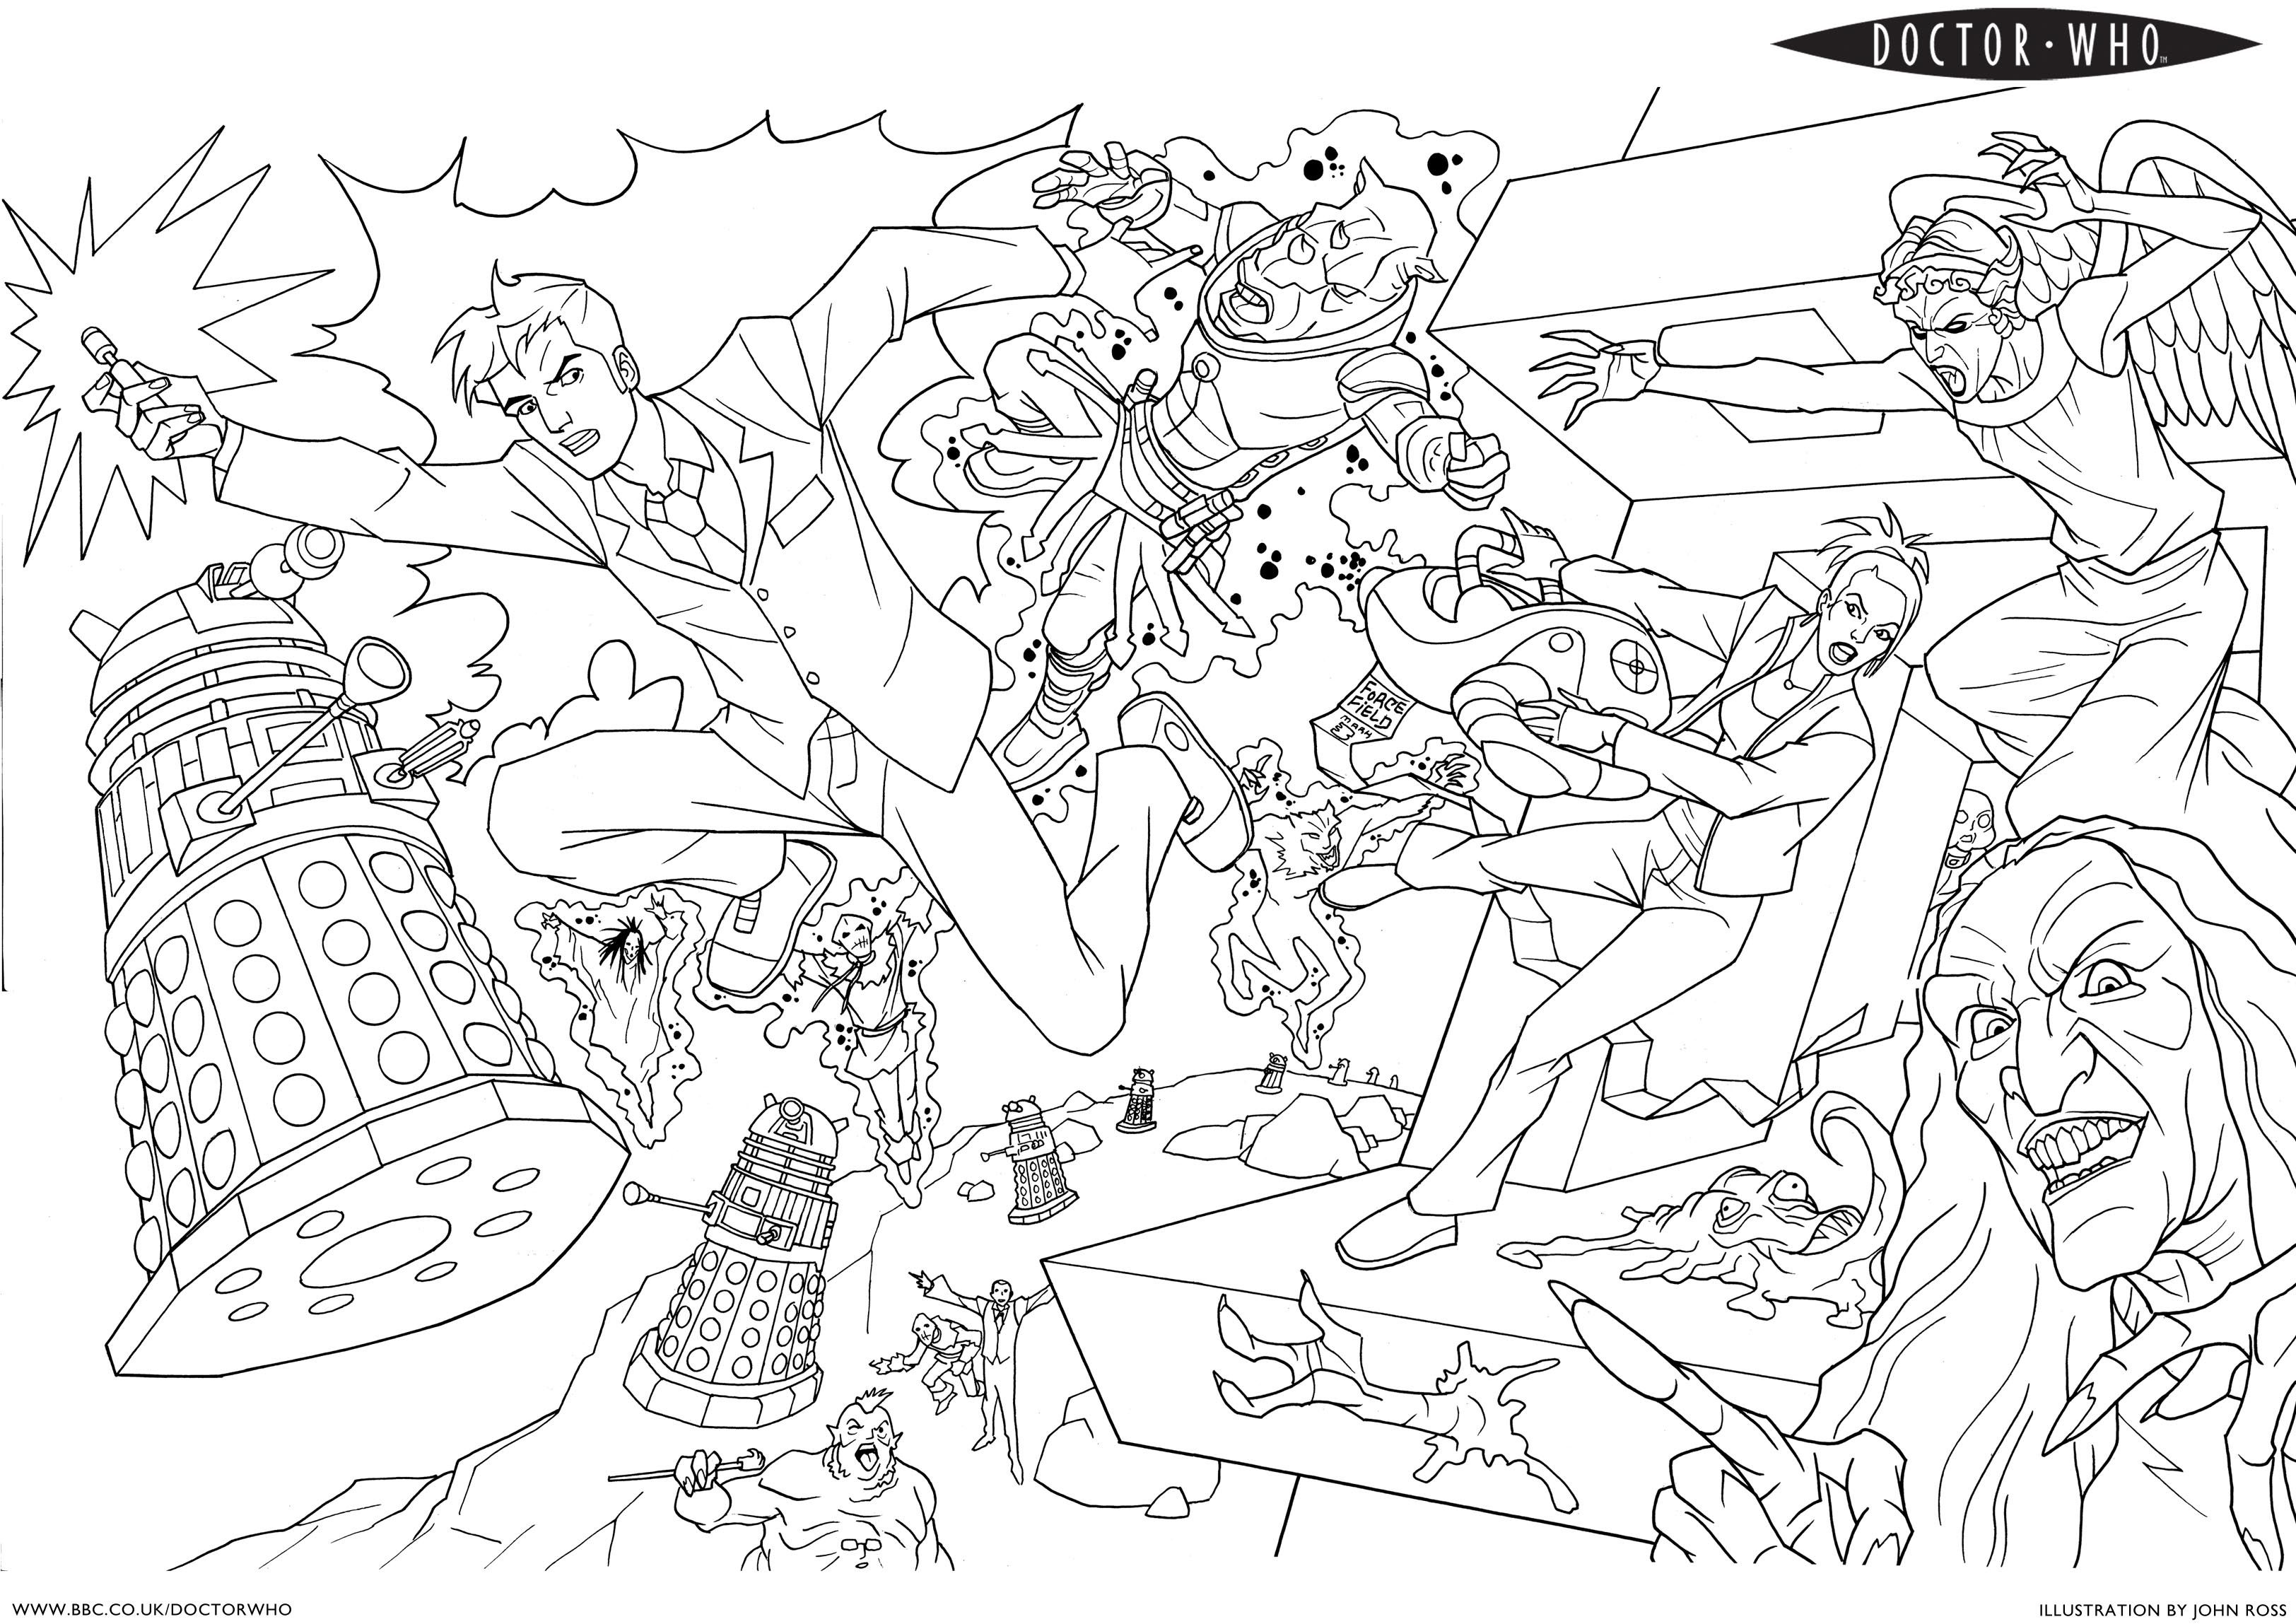 This is a photo of Inventive Dr Who Coloring Book